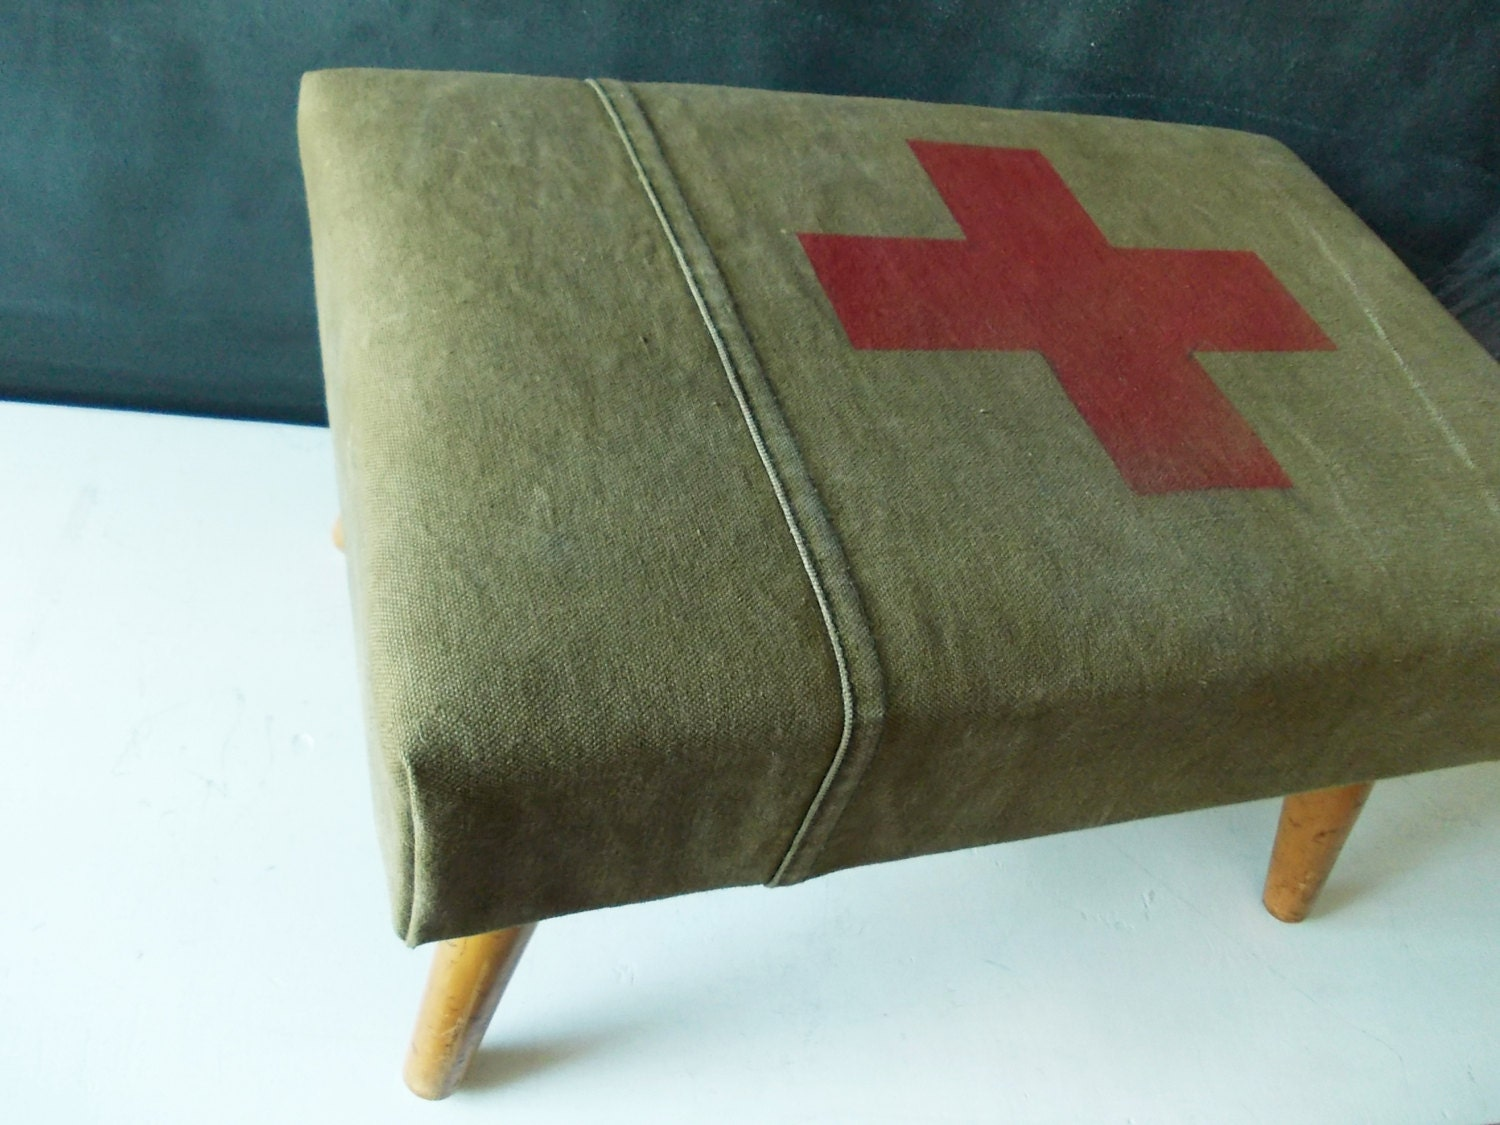 Upholstered Vintage Footstool : Red Cross on Army Green Canvas - HippopoVintage